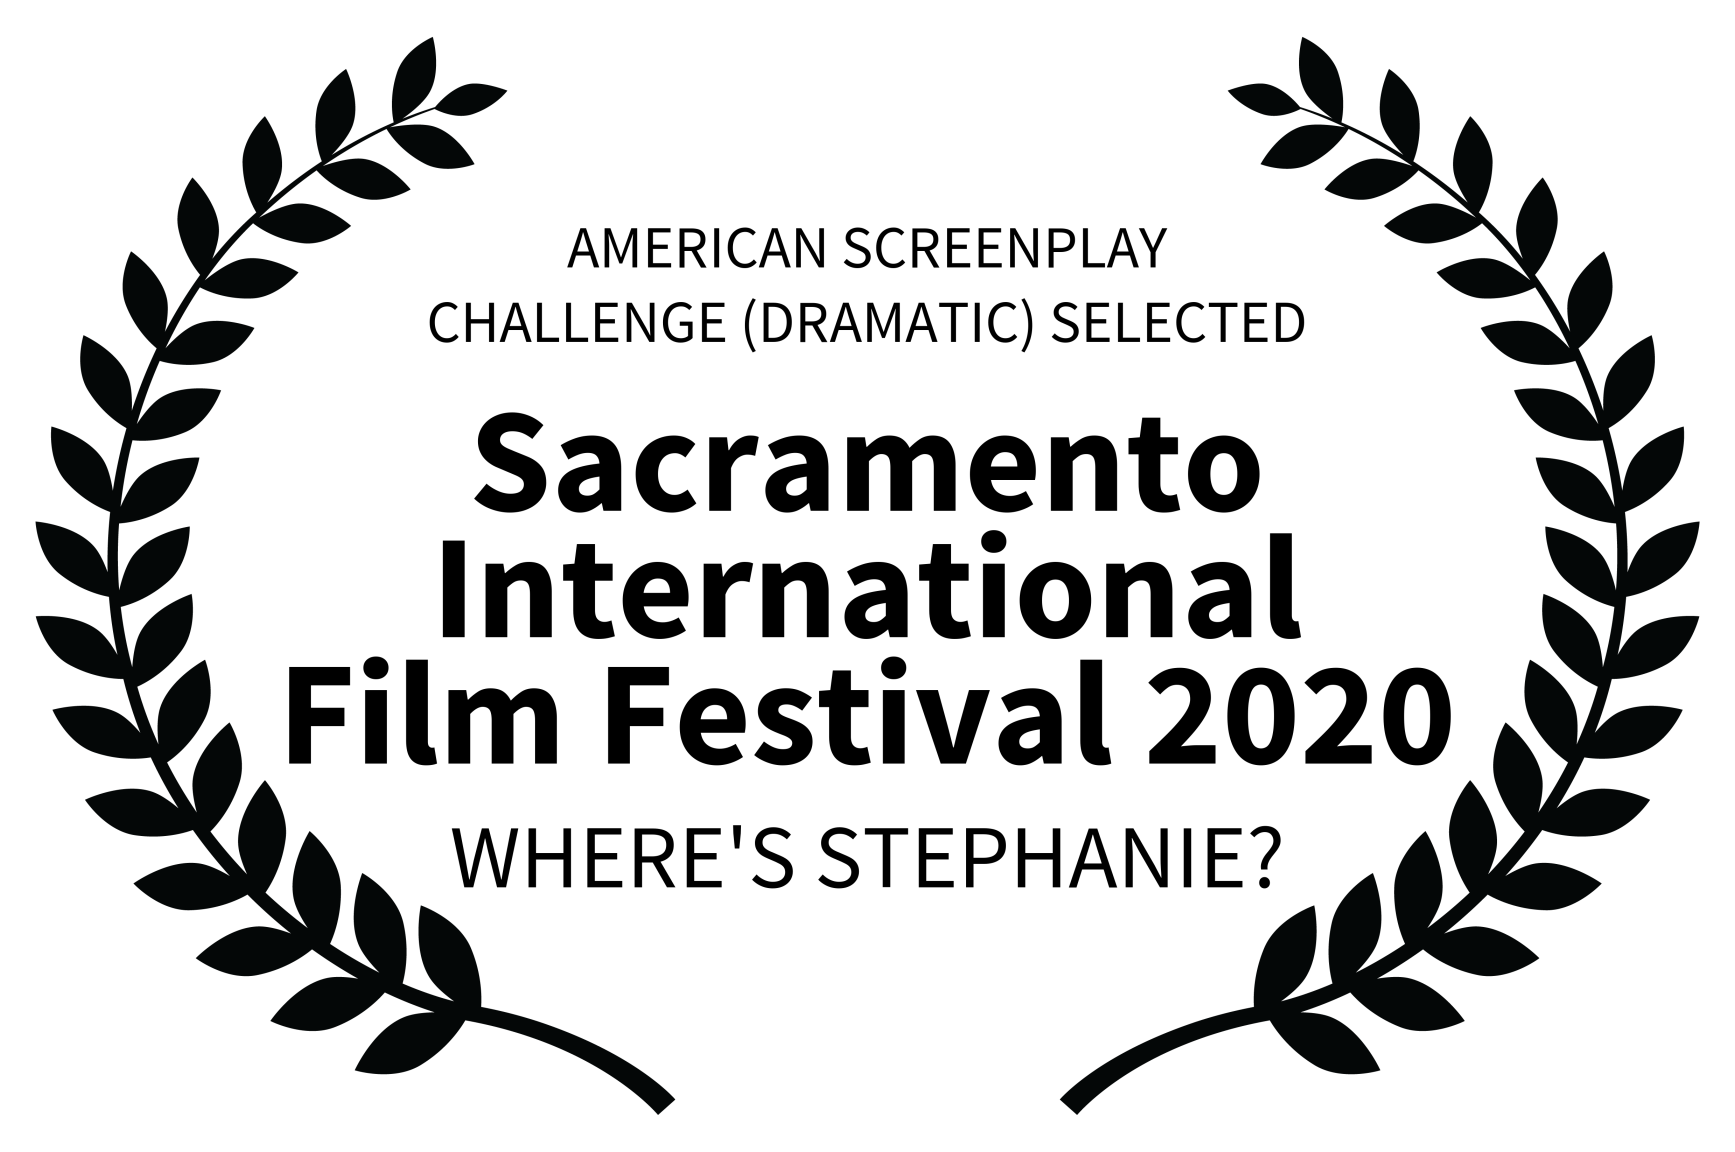 AMERICAN SCREENPLAY CHALLENGE DRAMATIC SELECTED - Sacramento International Film Festival 2020 - WHERES STEPHANIE